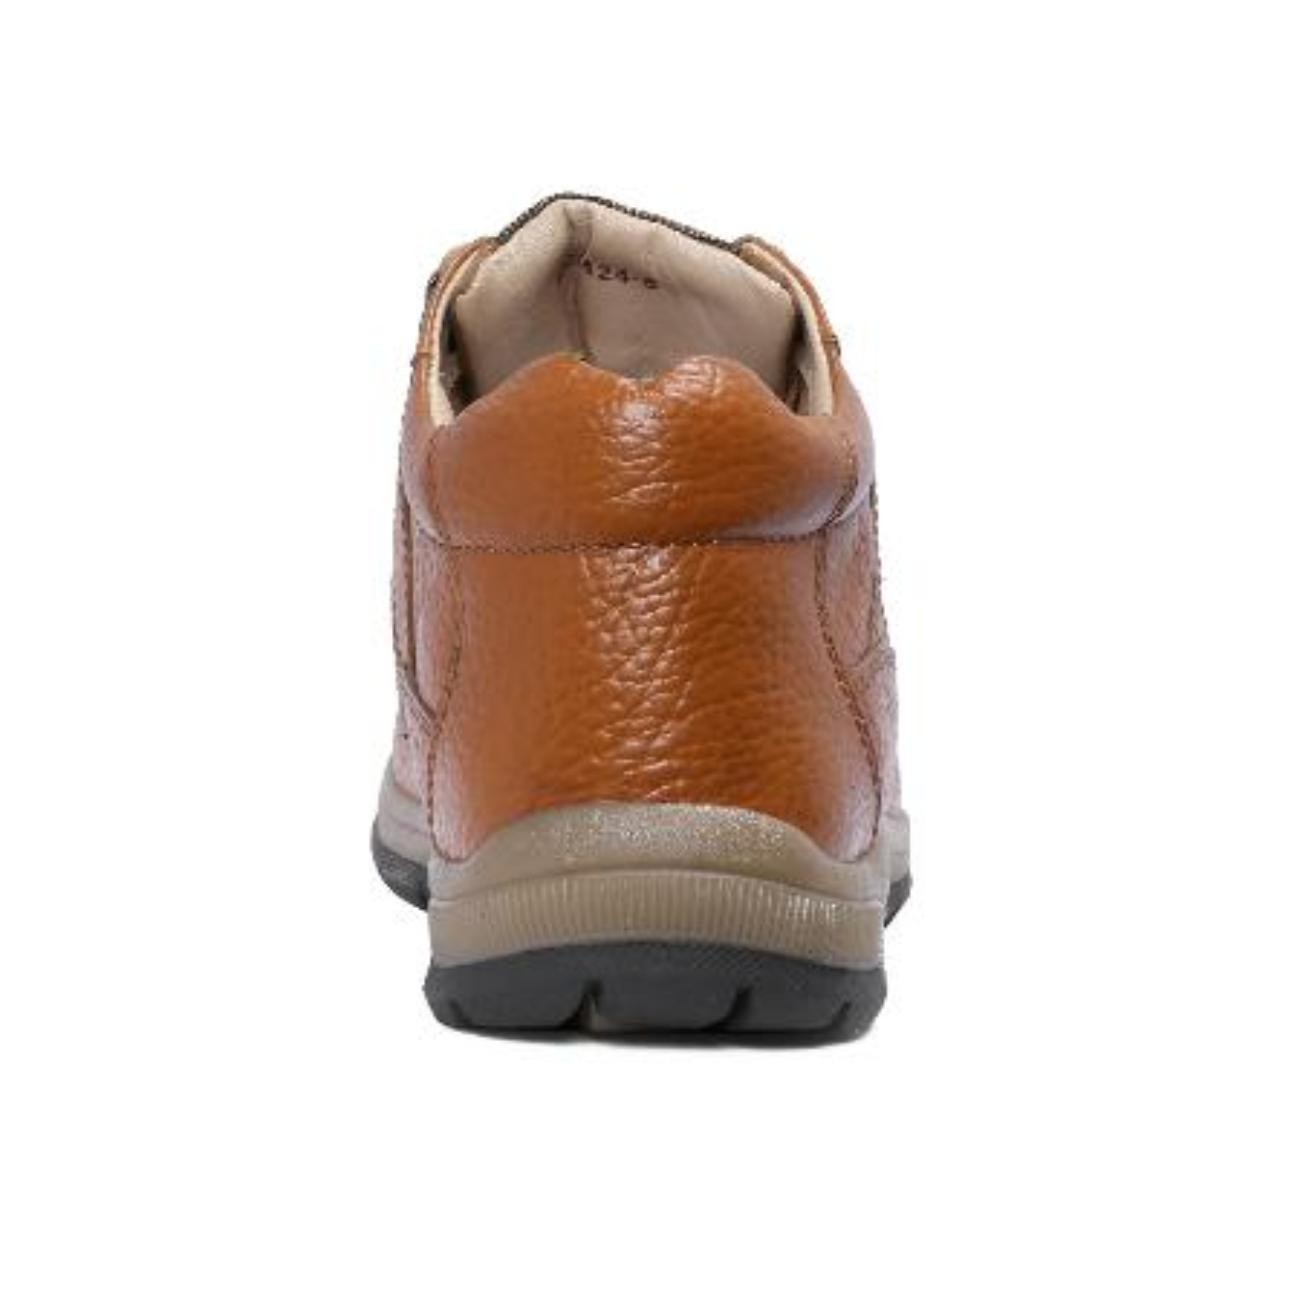 low ankle elephant tan casual leather shoes from behind